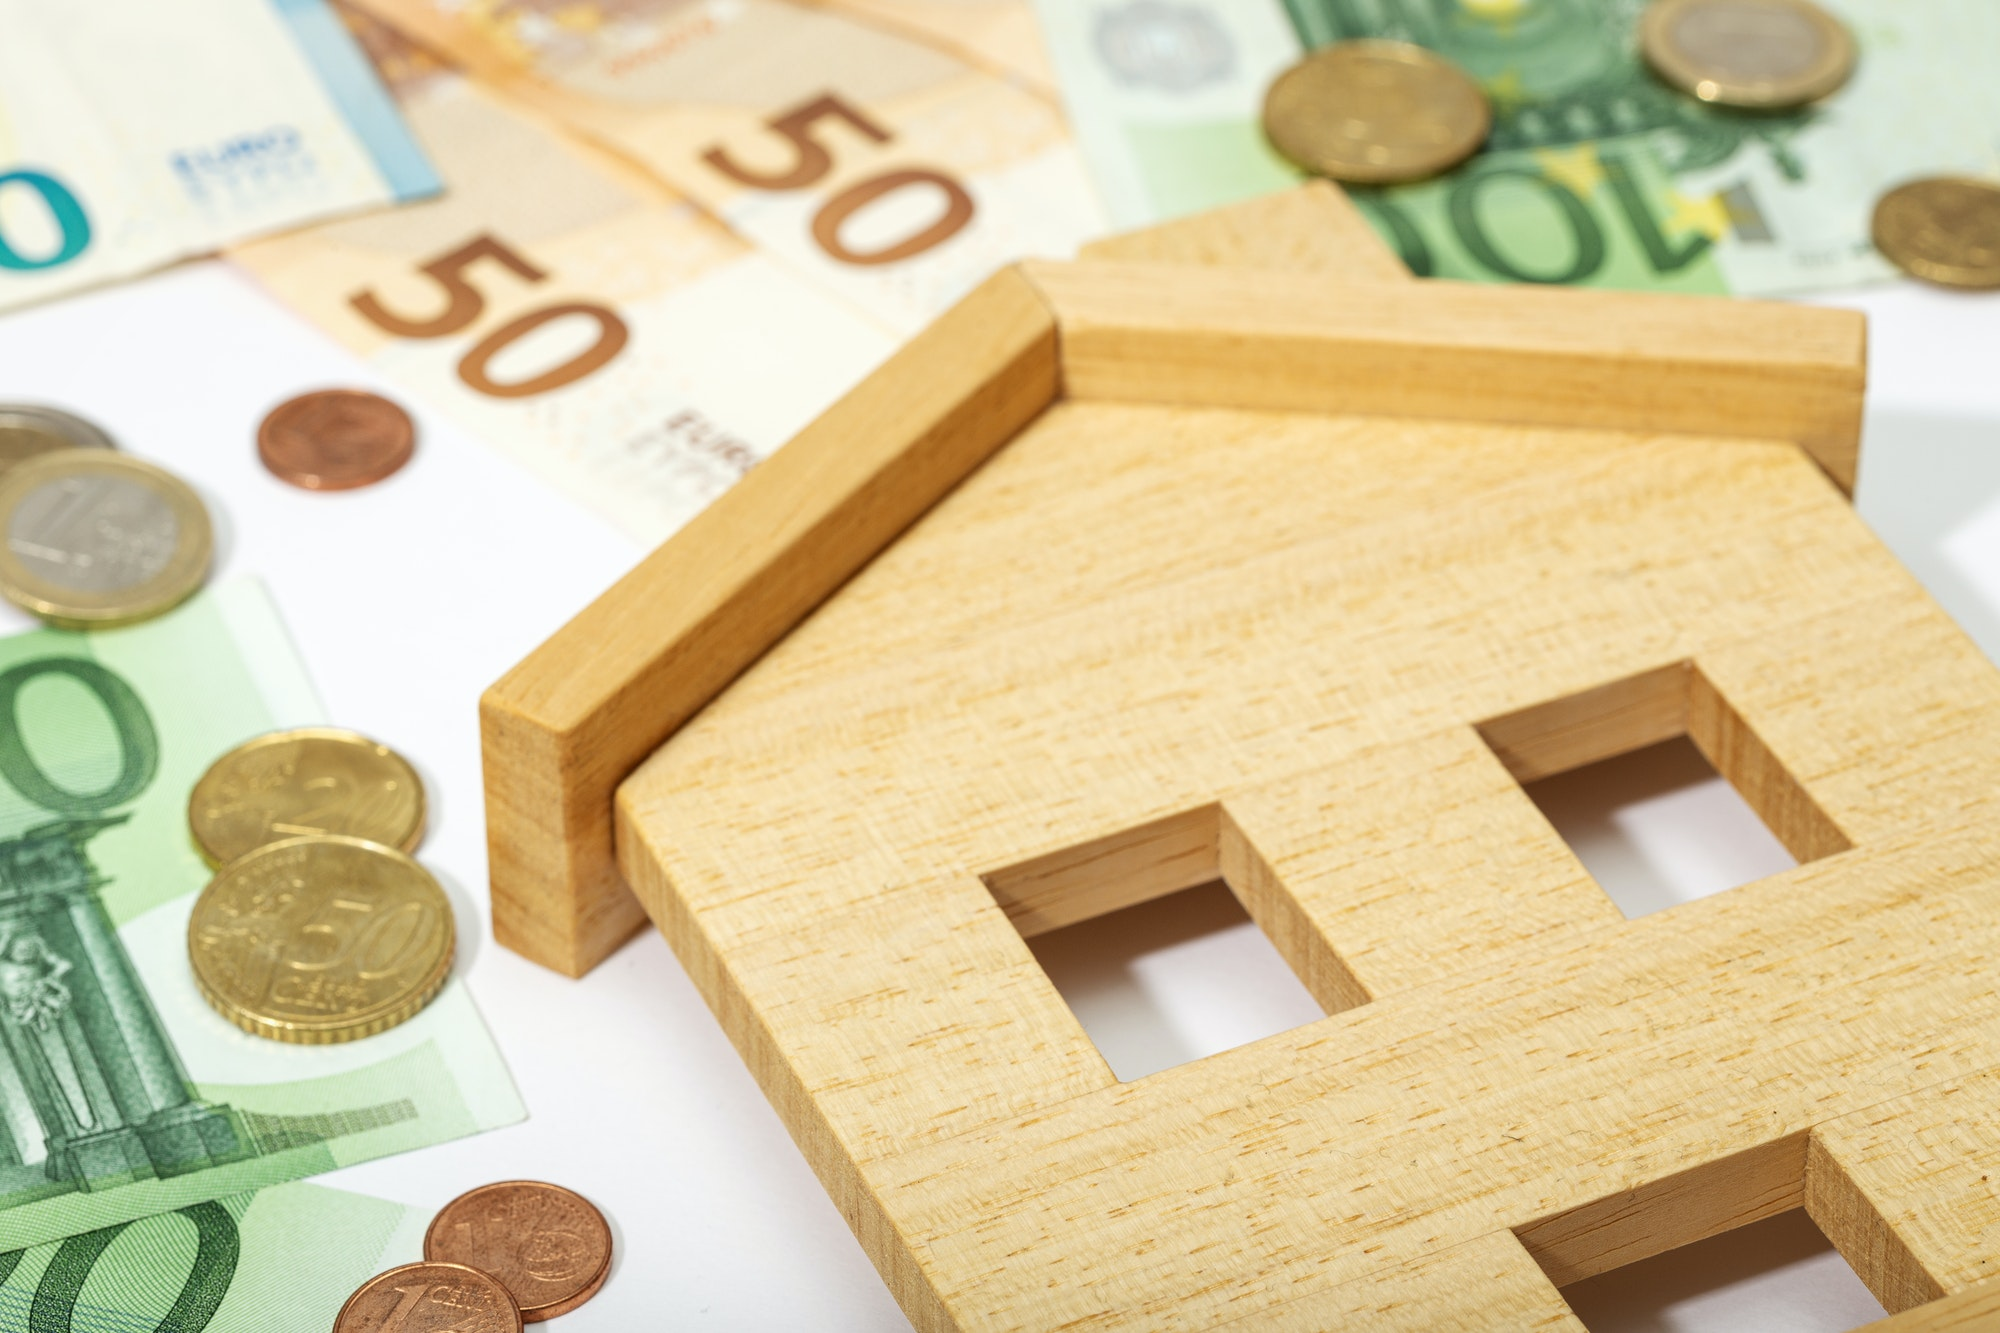 Mortgages account for 41% of salary, on average